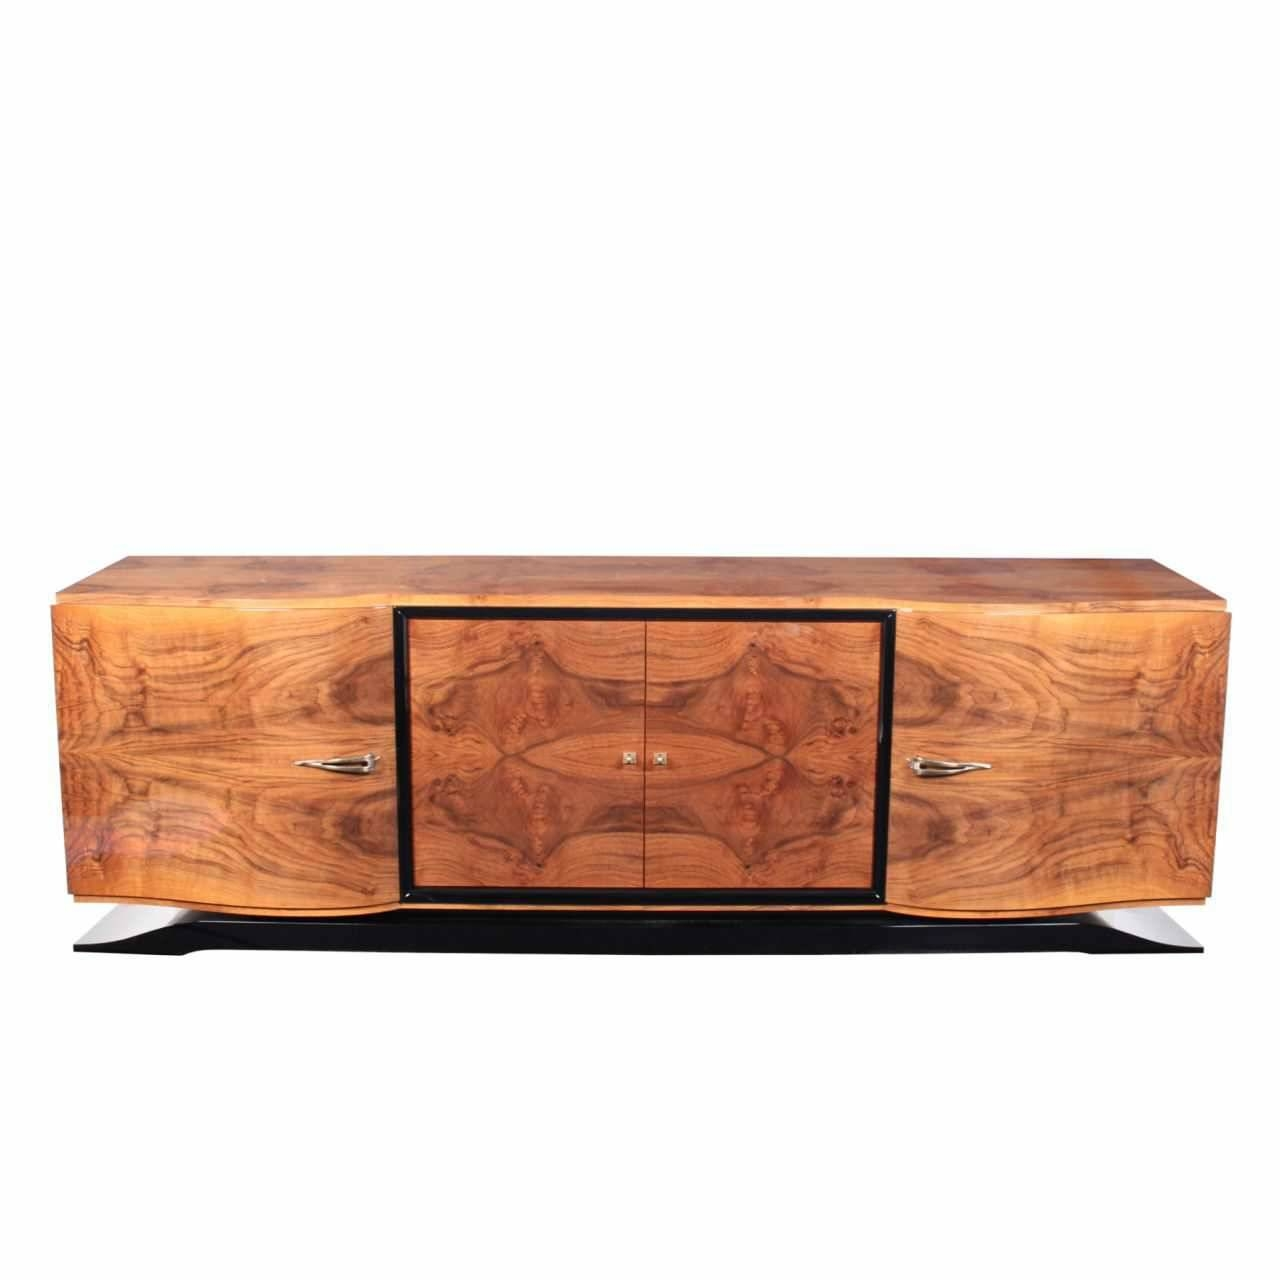 Art Deco Sideboard / Rosewood / Glossy Lacquered Wood - Sb001 intended for Art Deco Sideboards (Image 3 of 15)